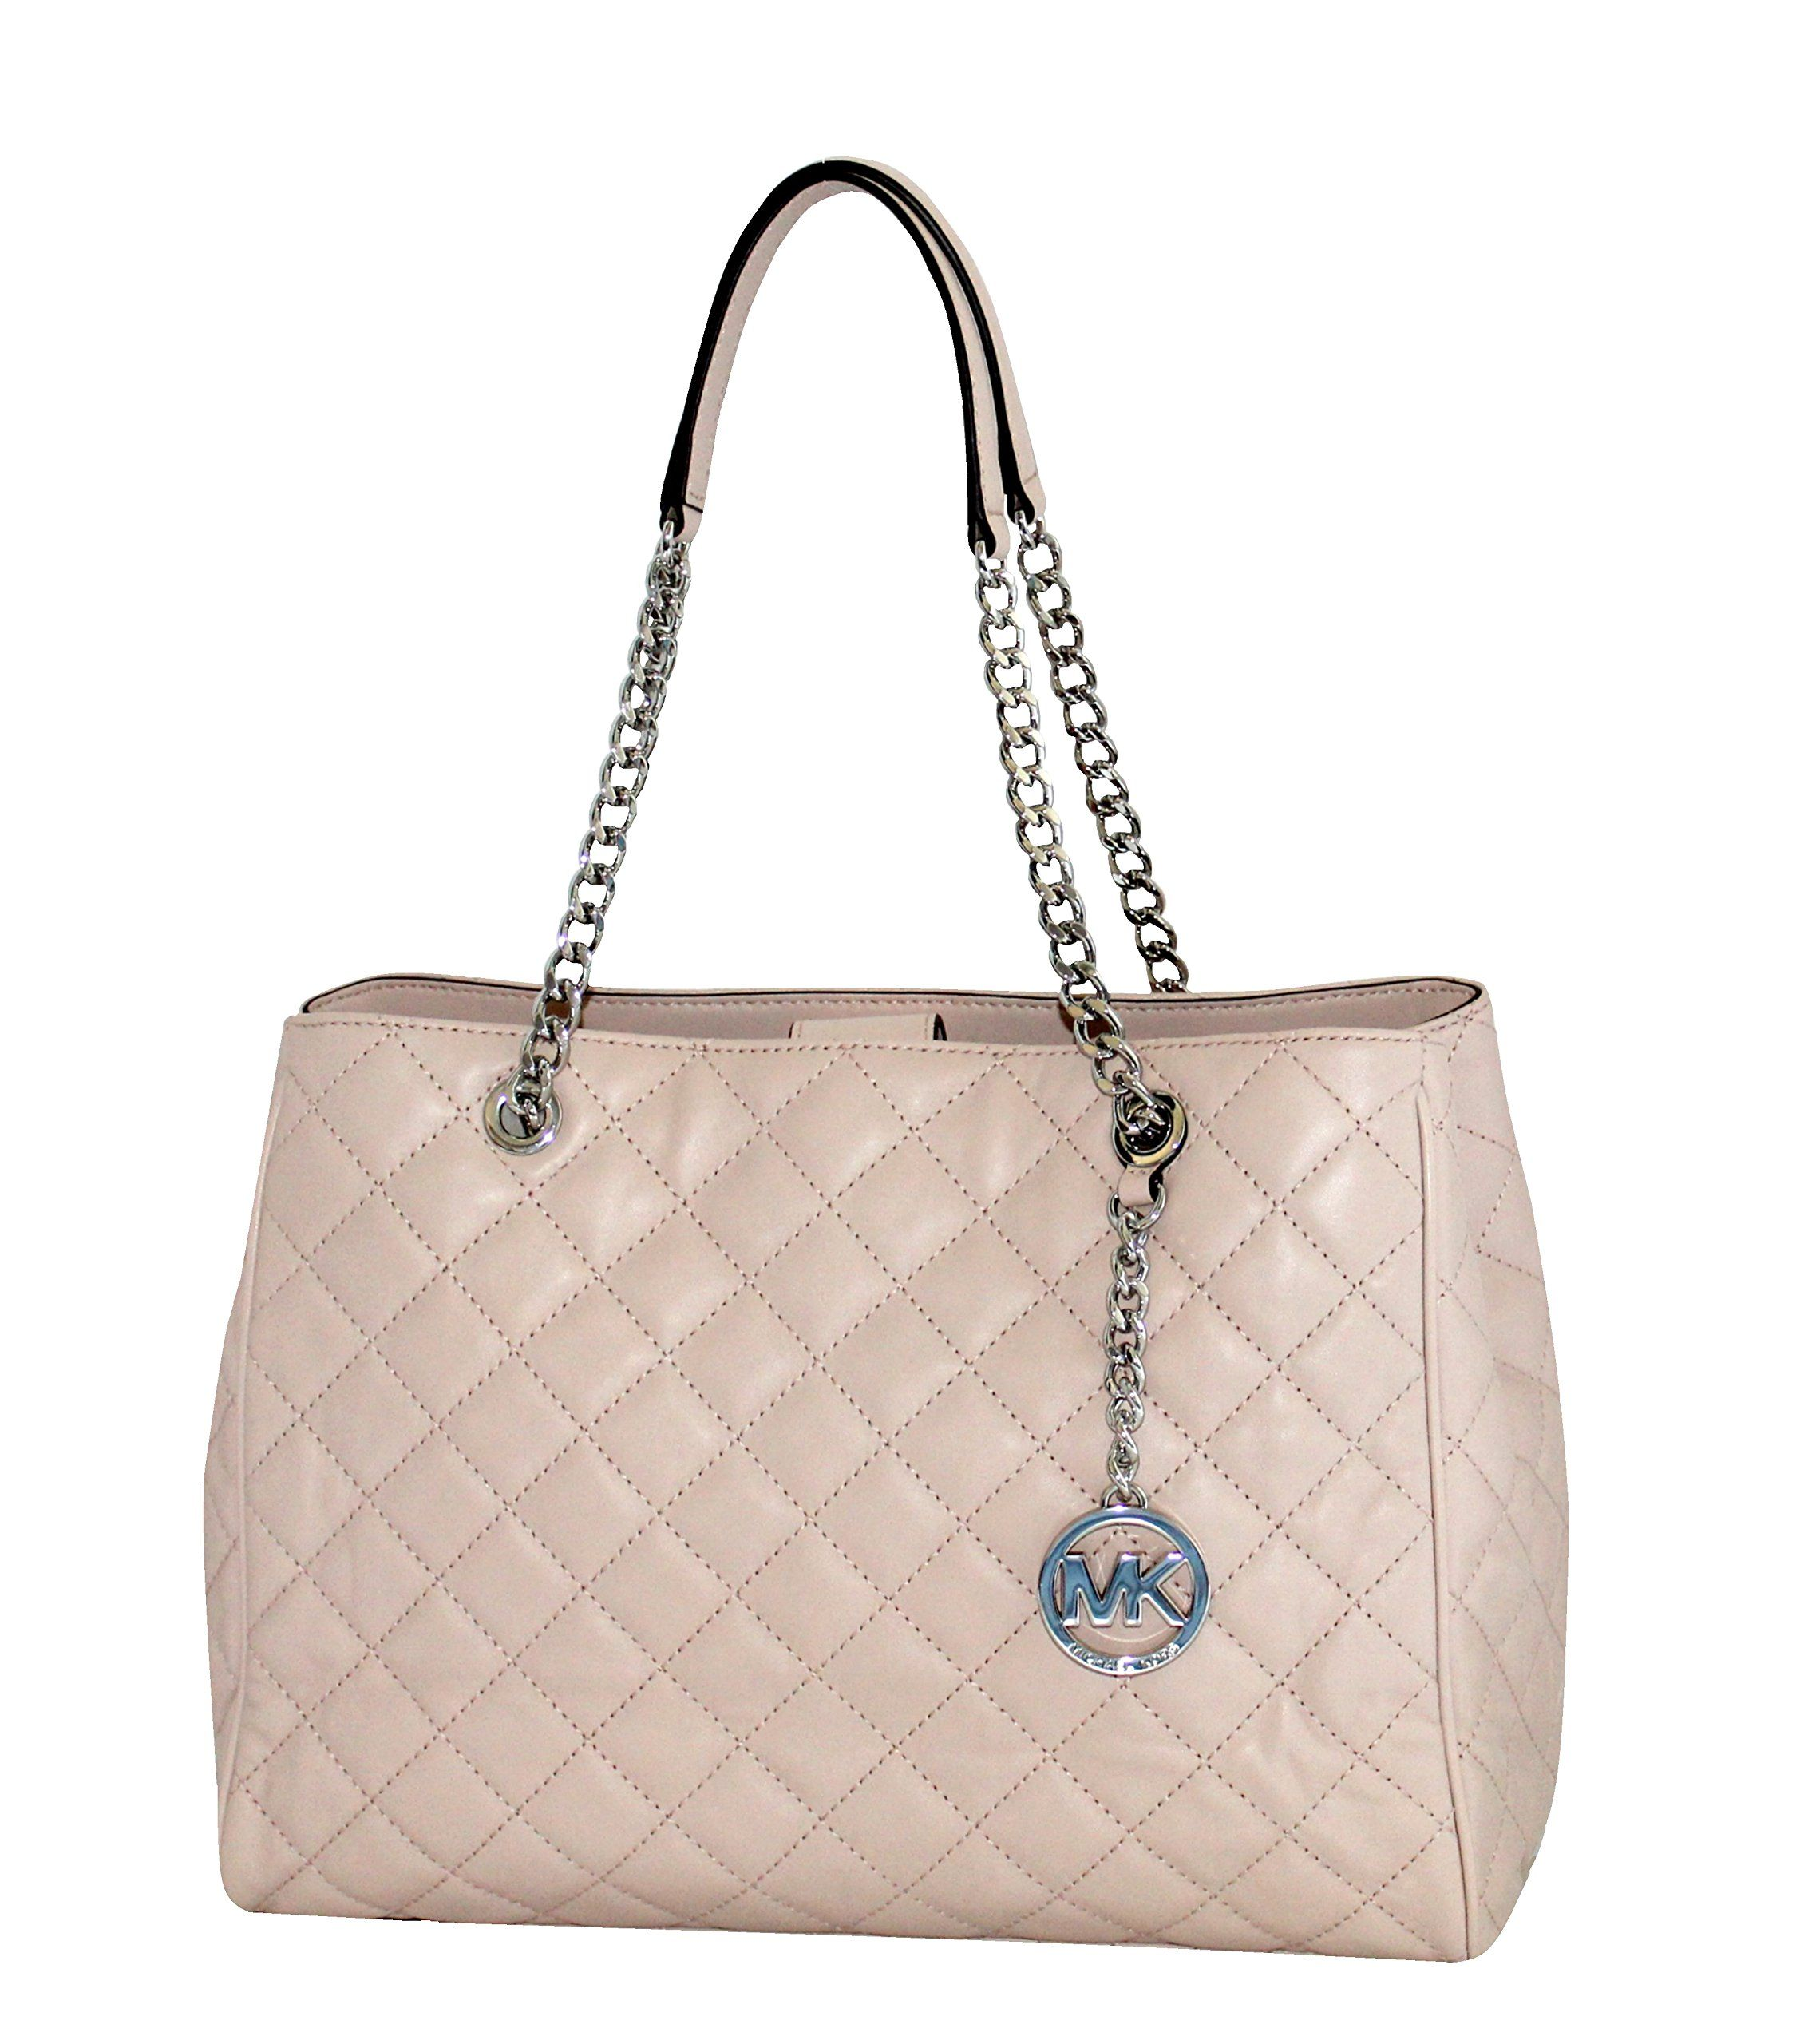 923fbbbc685a MICHAEL Michael Kors Susannah Womens Large Quilted Leather Handbag TOTE  BALLET -- Very nice of you to drop by to view the image.